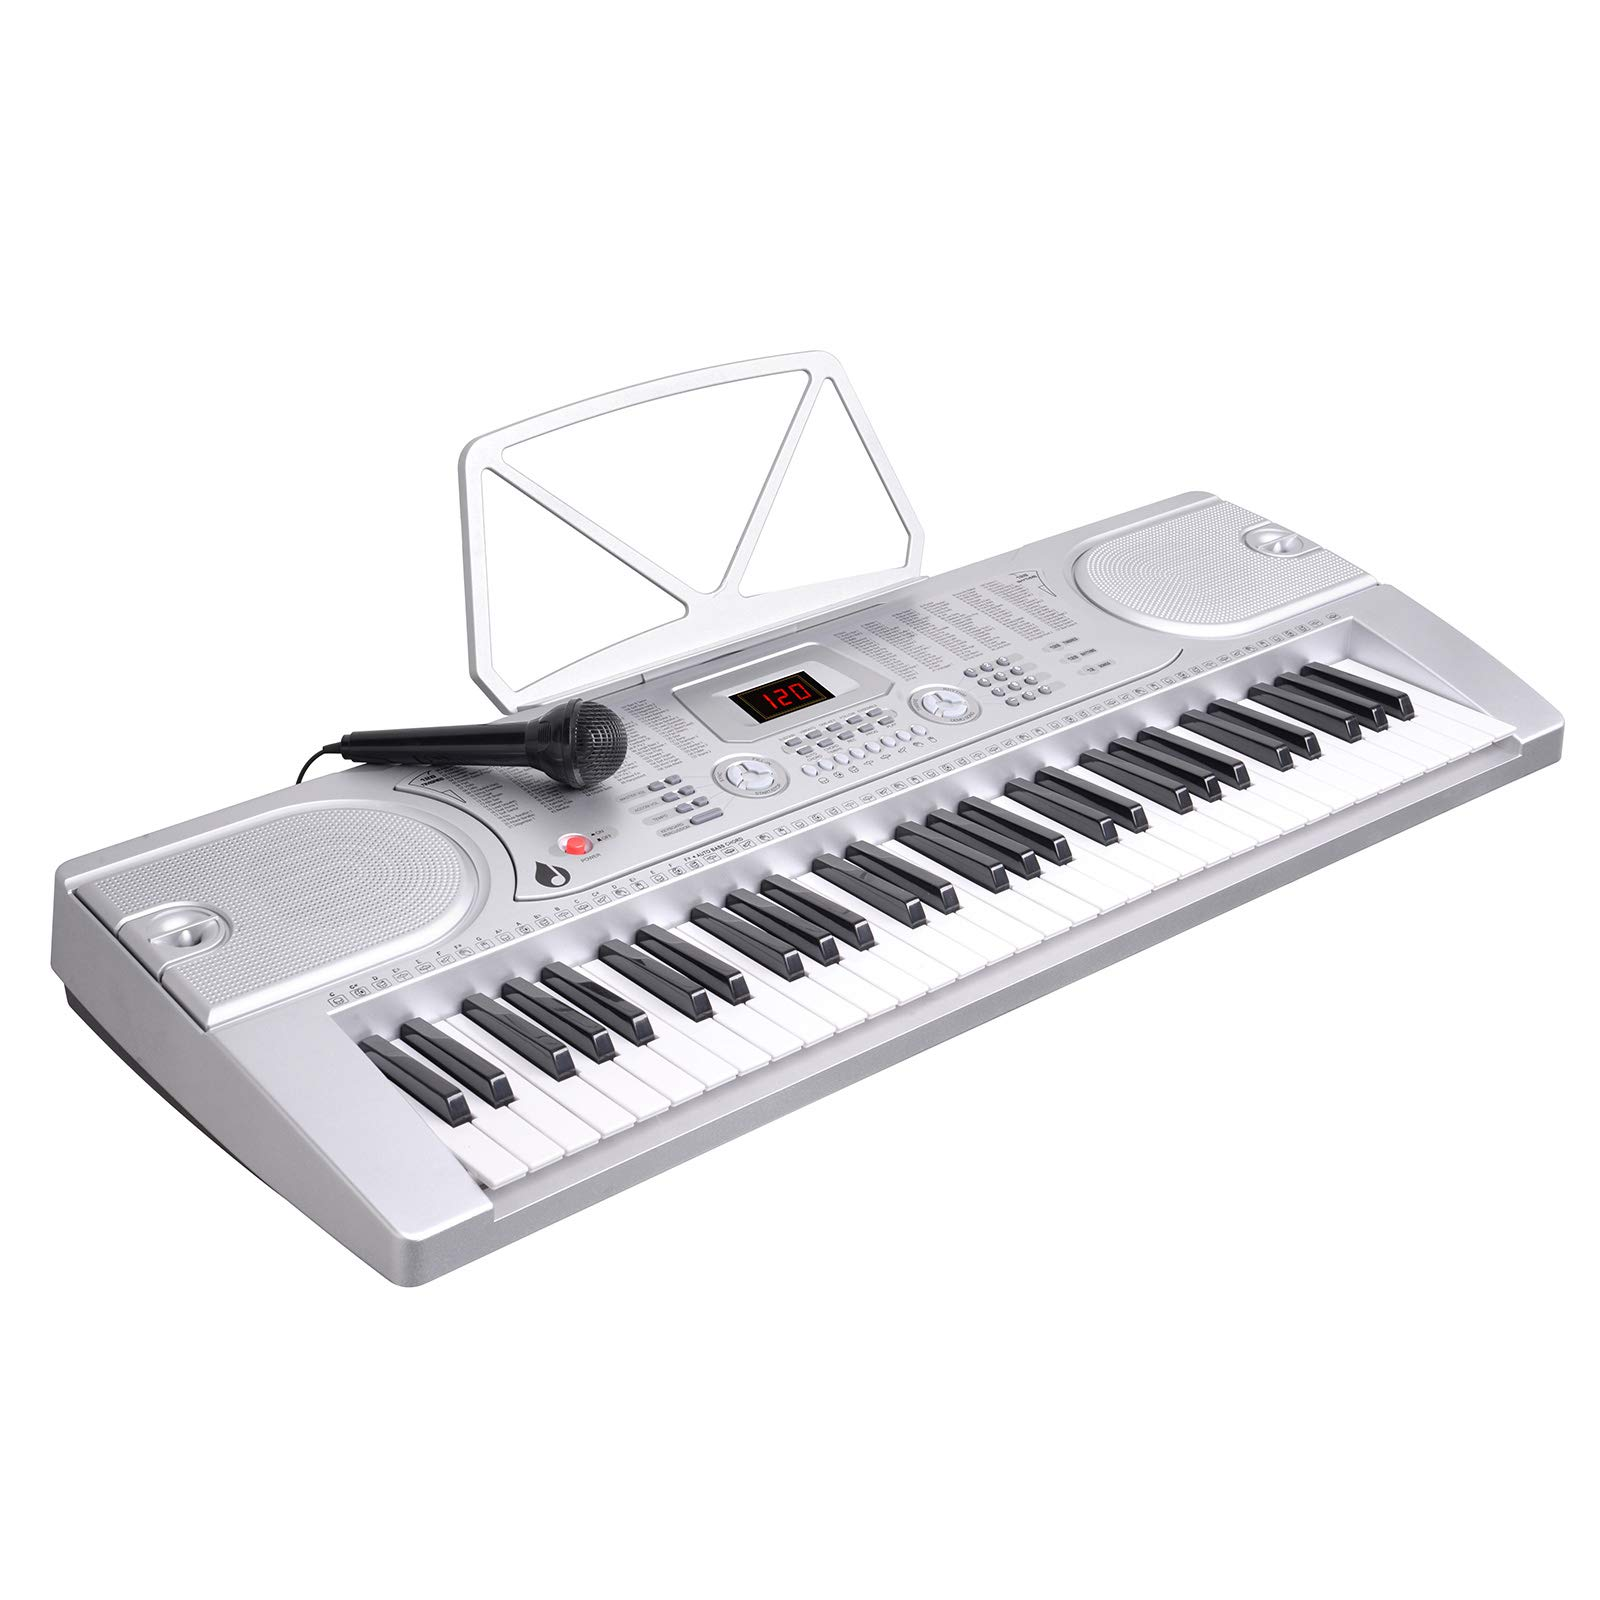 LAGRIMA 61 key Portable Electric Piano Keyboard,Starter Practice Keyboard Piano W/Music Stand, Power Supply and Microphone, Suit for Kids(Over 8 Years Old) Teen Adult Beginners, Silver by LAGRIMA